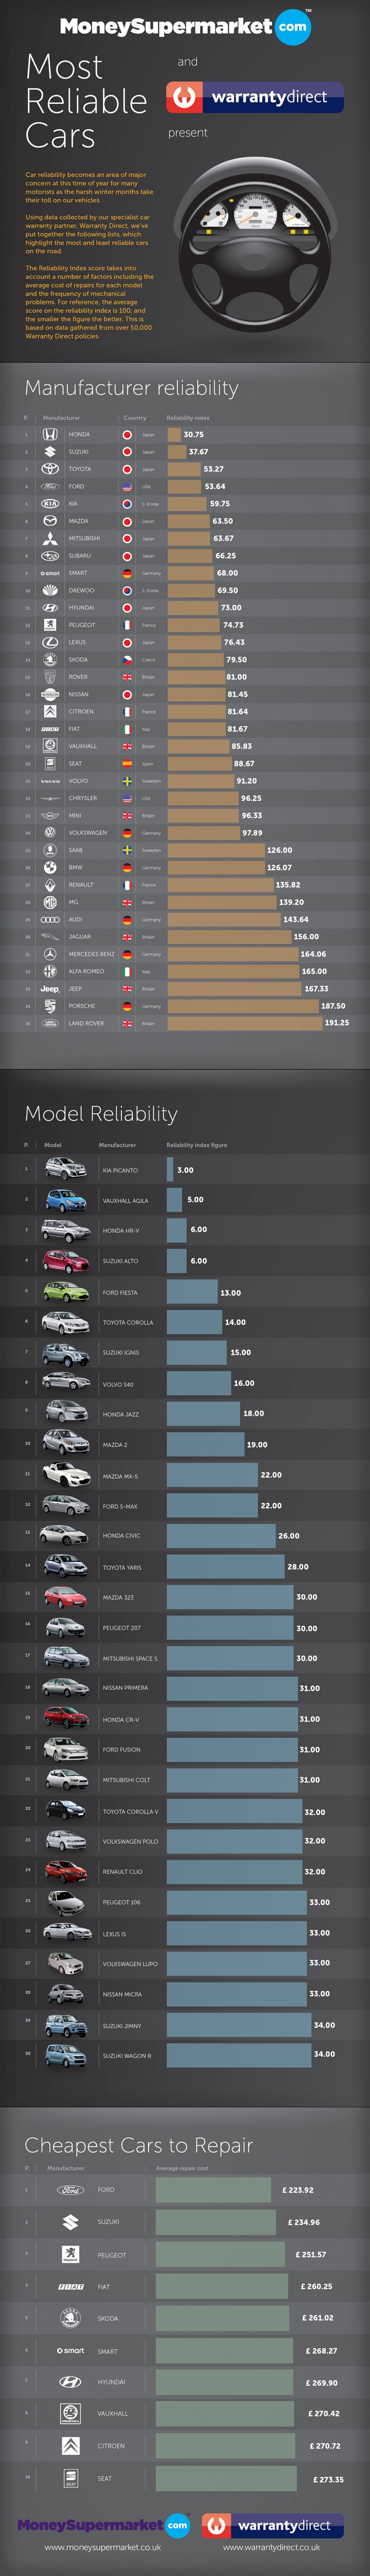 The MoneySupermarket Car Reliability Index Infographic